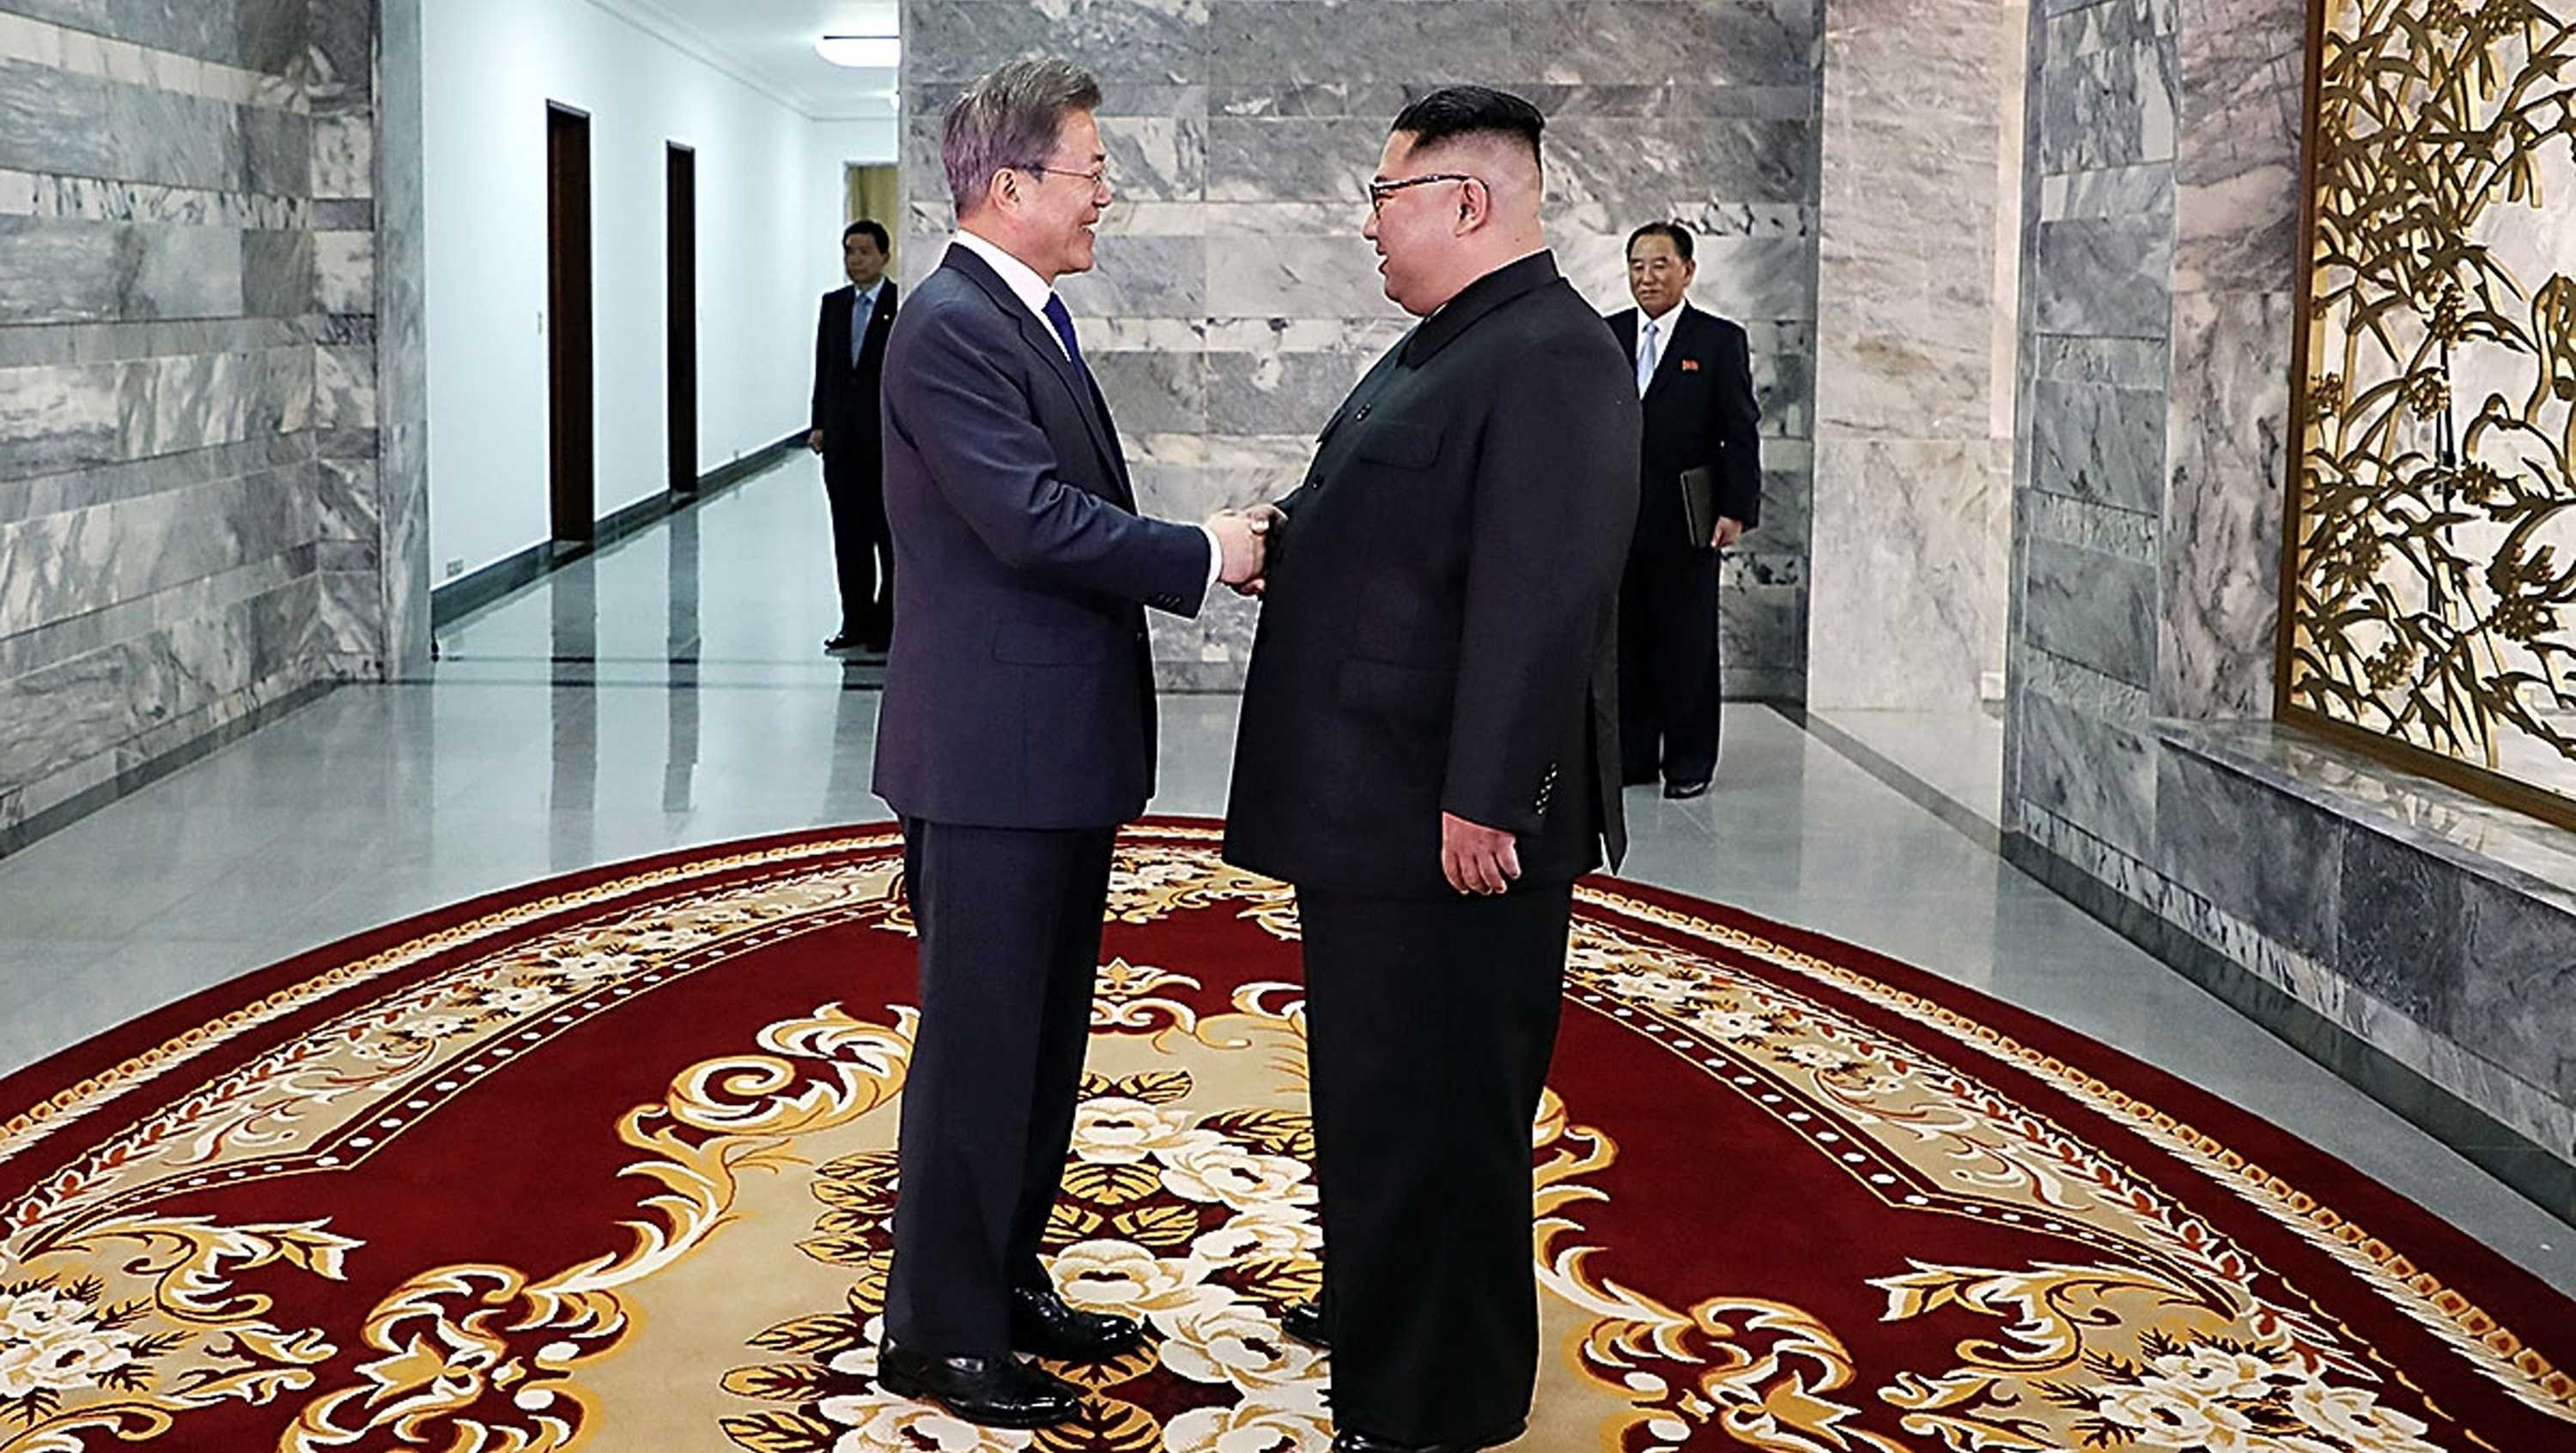 In this handout image provided by South Korean Presidential Blue House, South Korean President Moon Jae-in (L) shake hands with North Korean leader Kim Jong Un (R) before their meeting on May 26, 2018 in Panmunjom, North Korea.